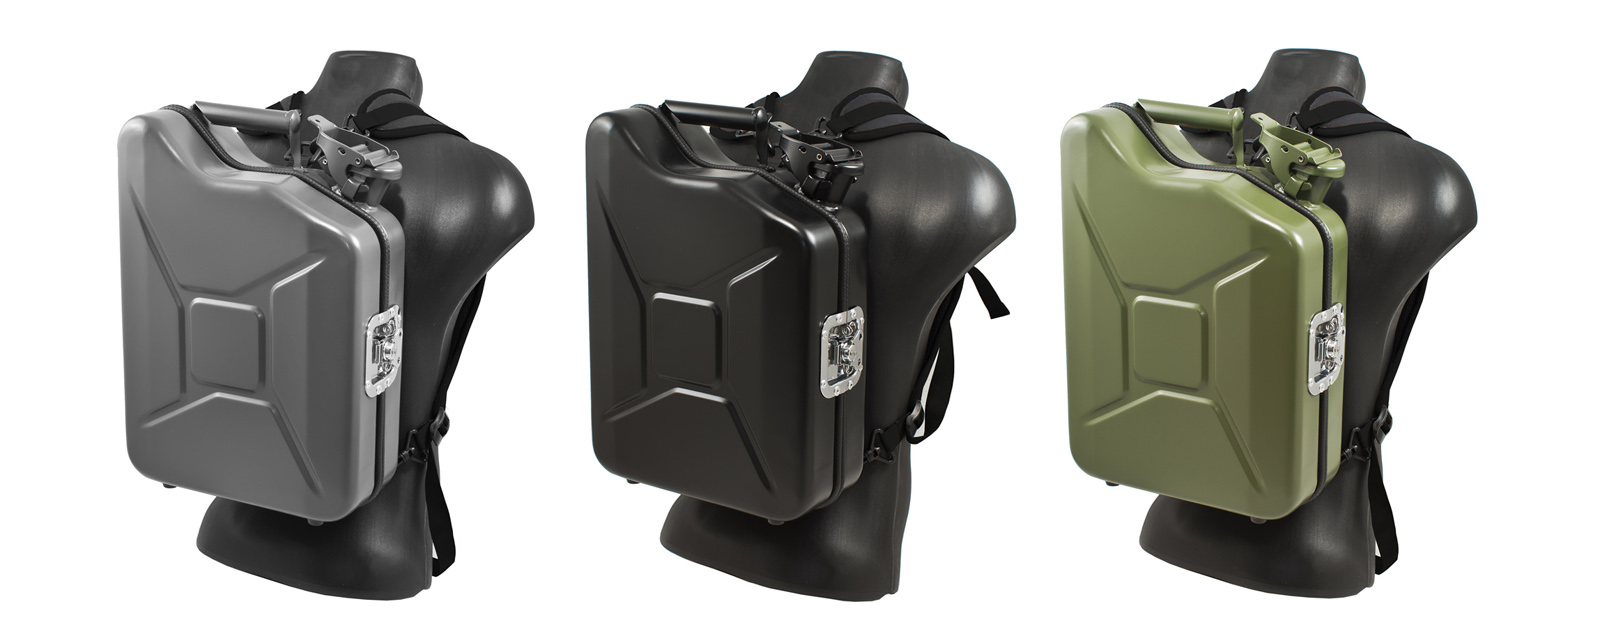 g-case-backpack-jerrycan-style-collection